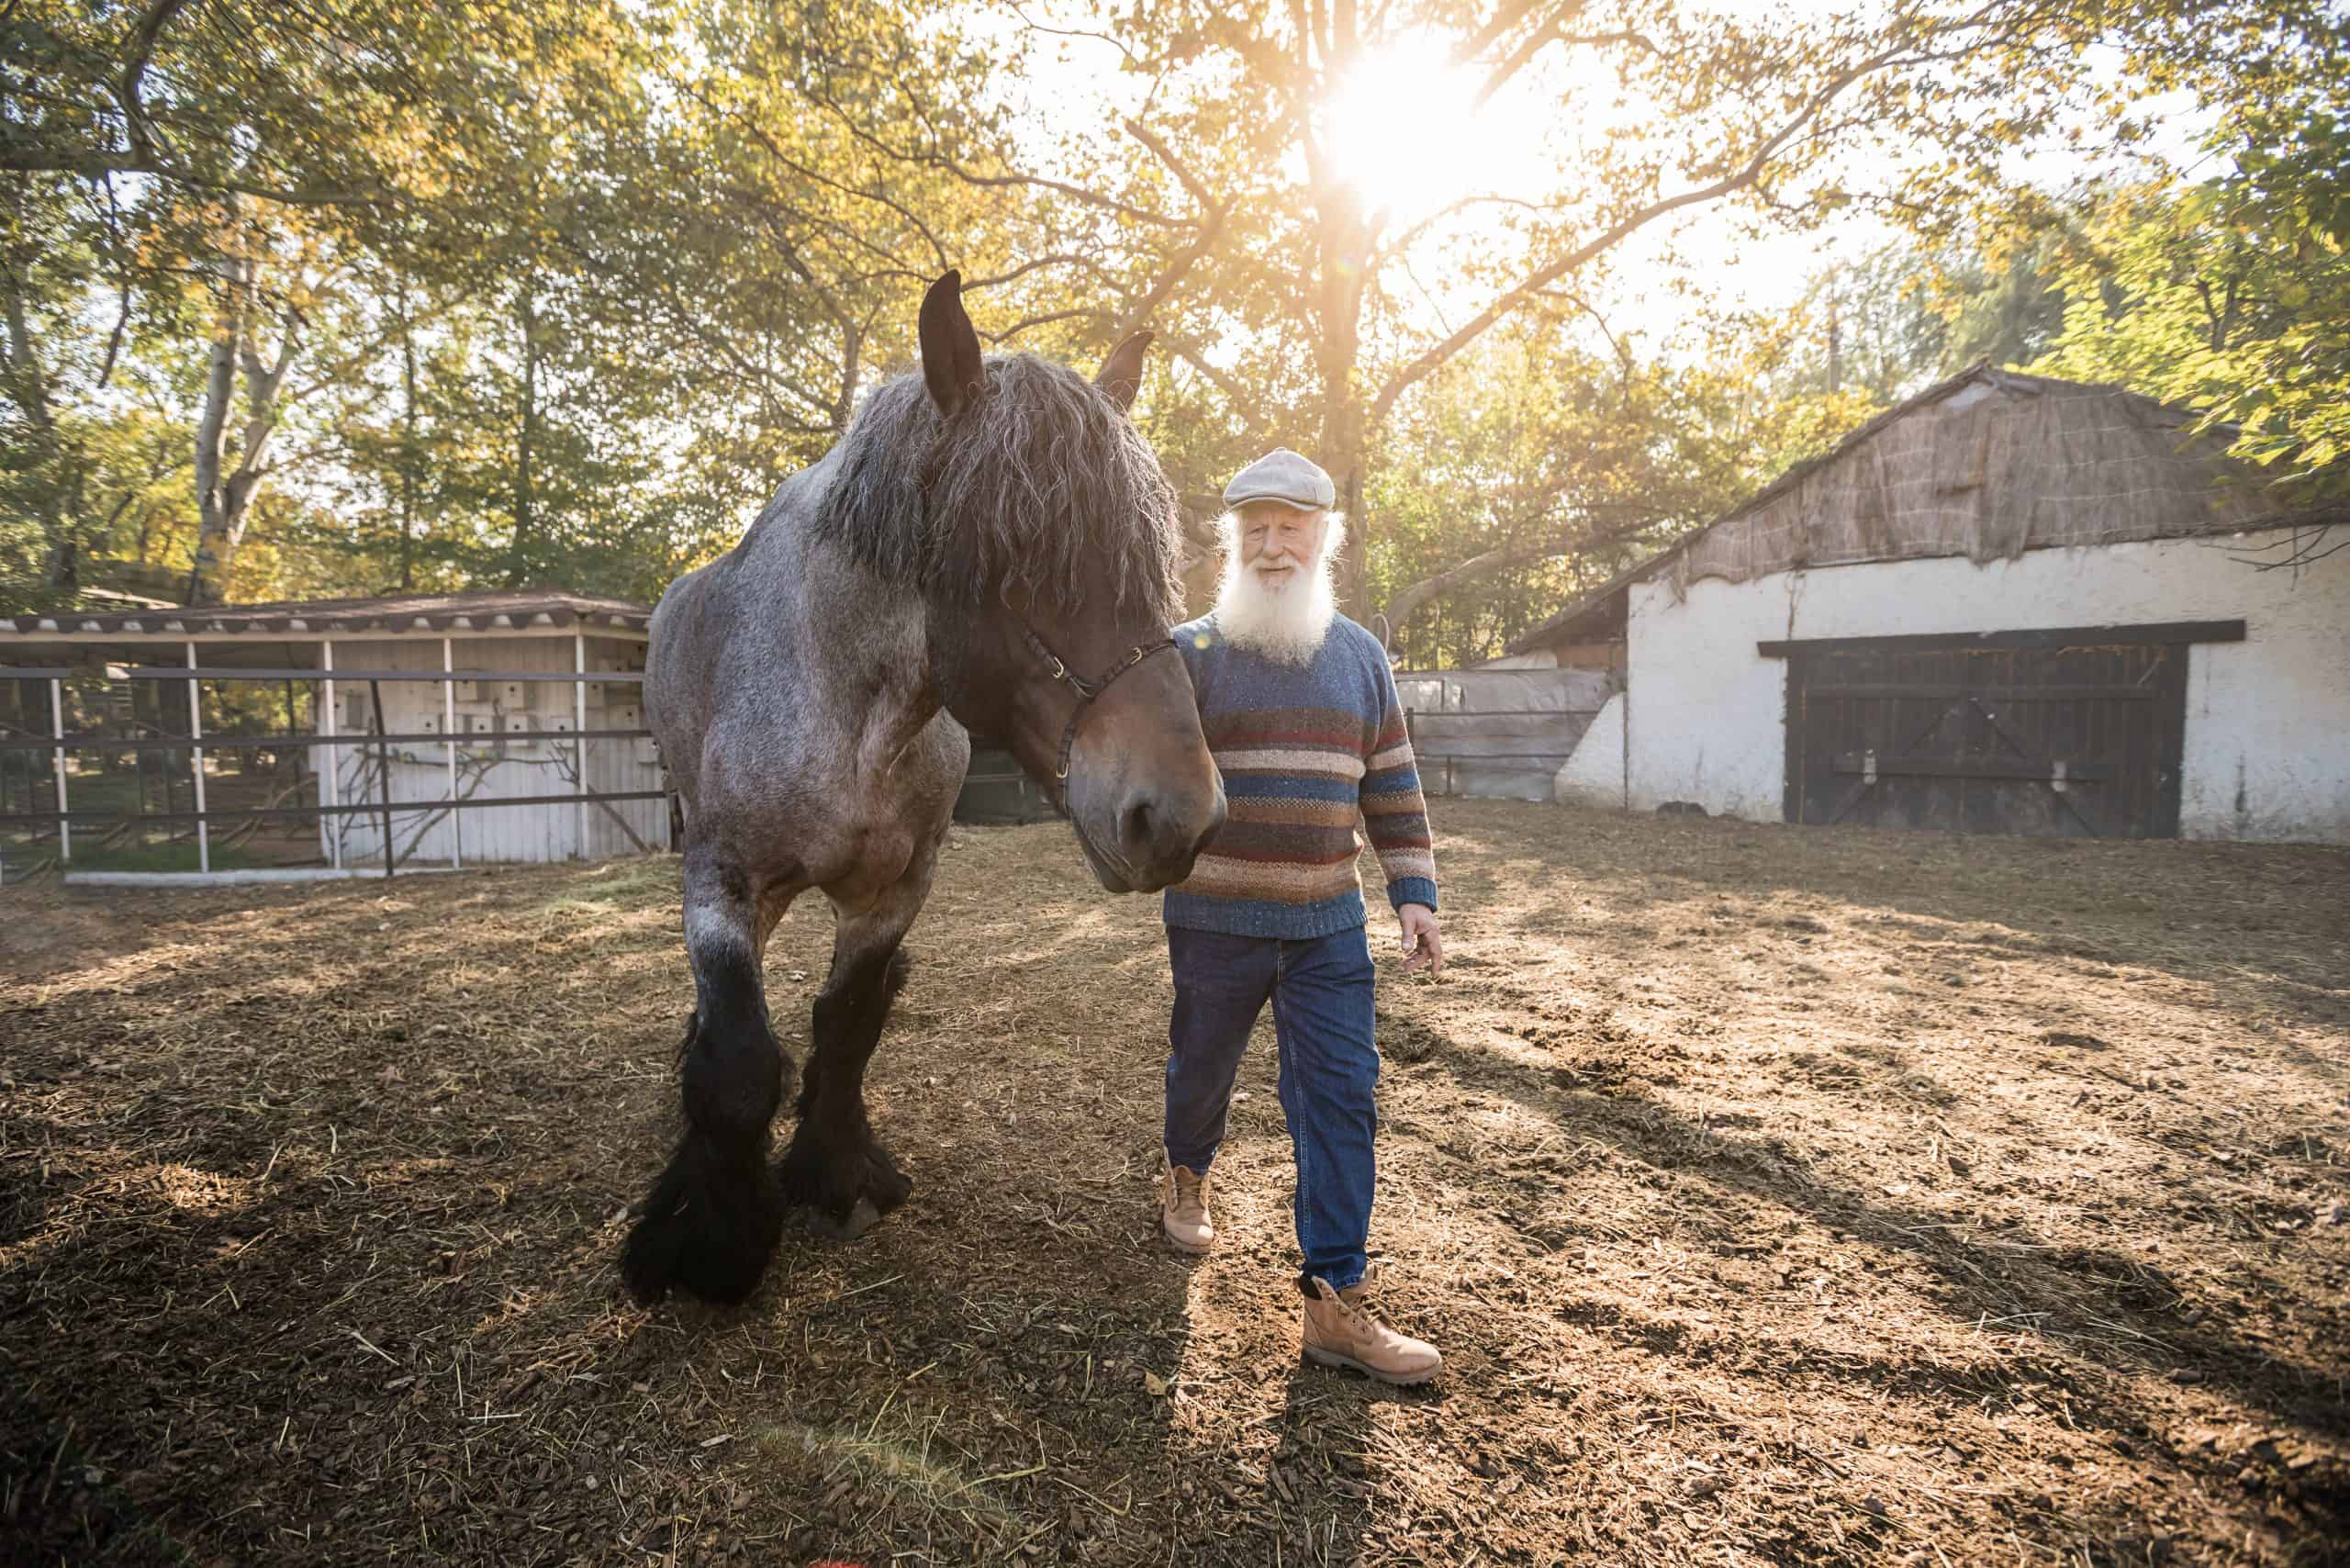 horses mental health benefits, man with horse